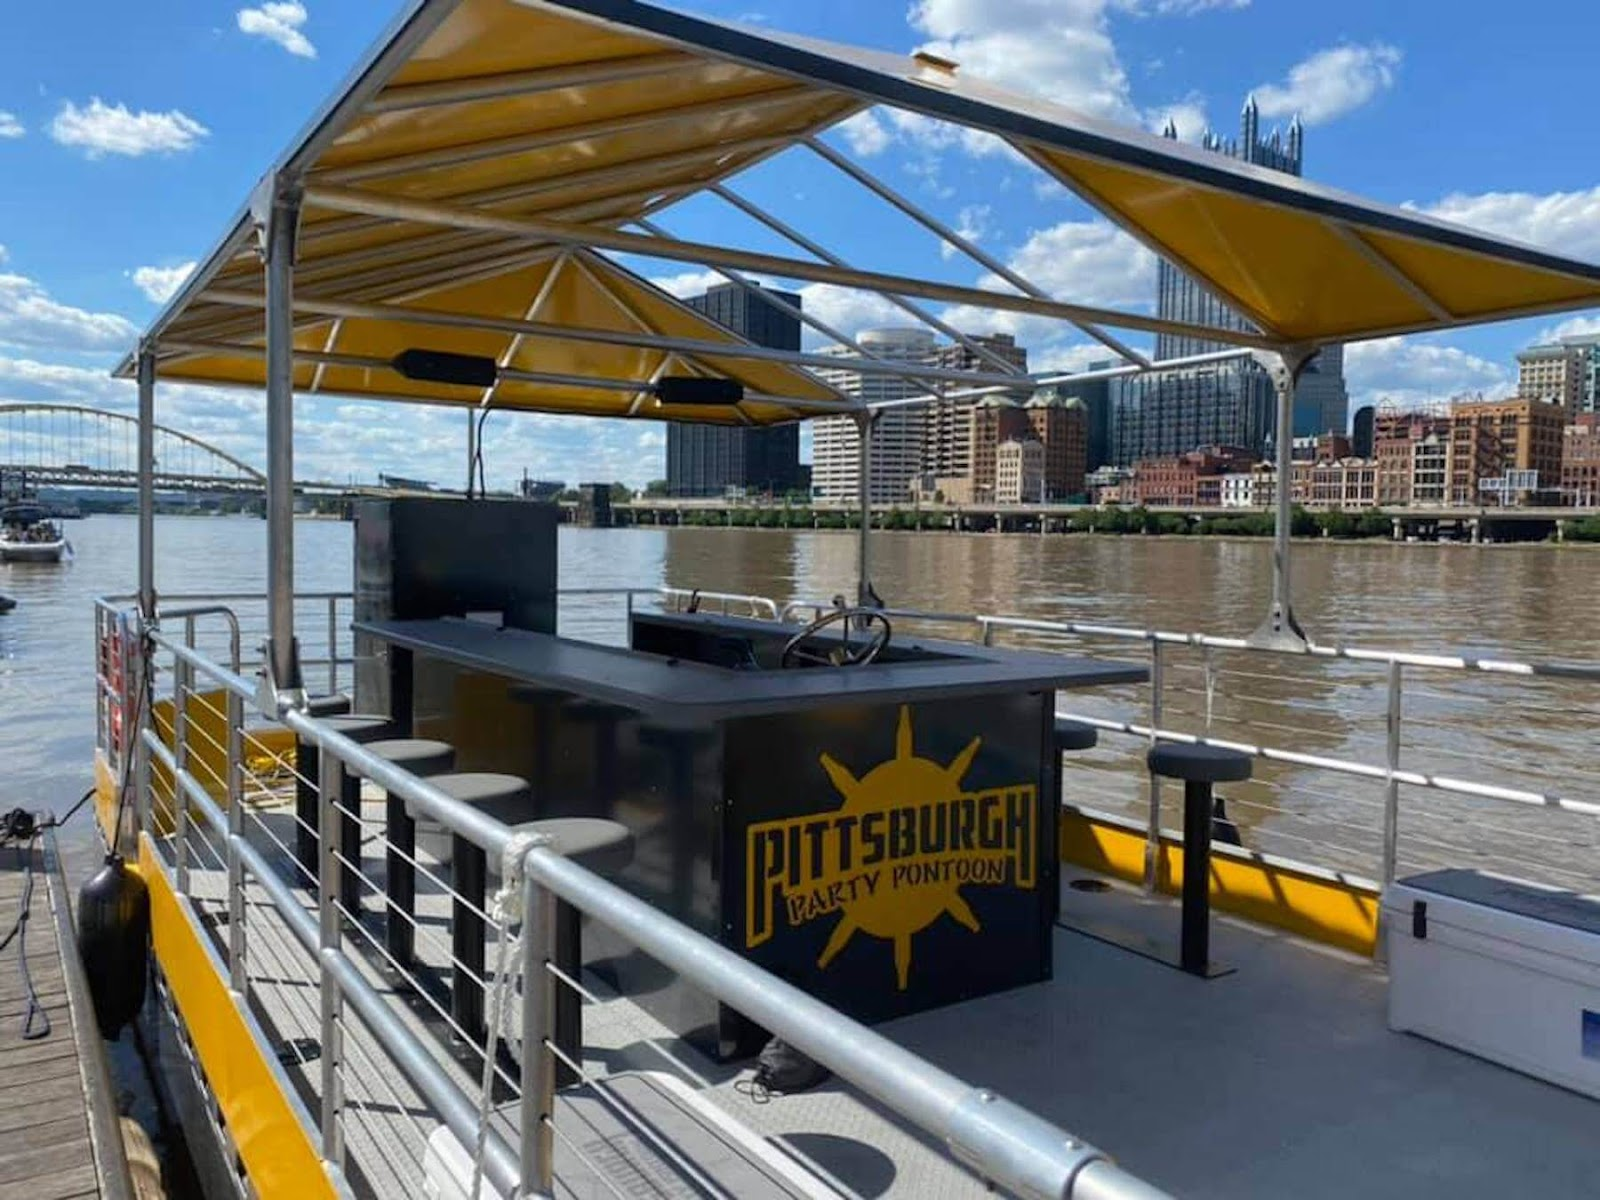 Pittsburgh party pontoon boat